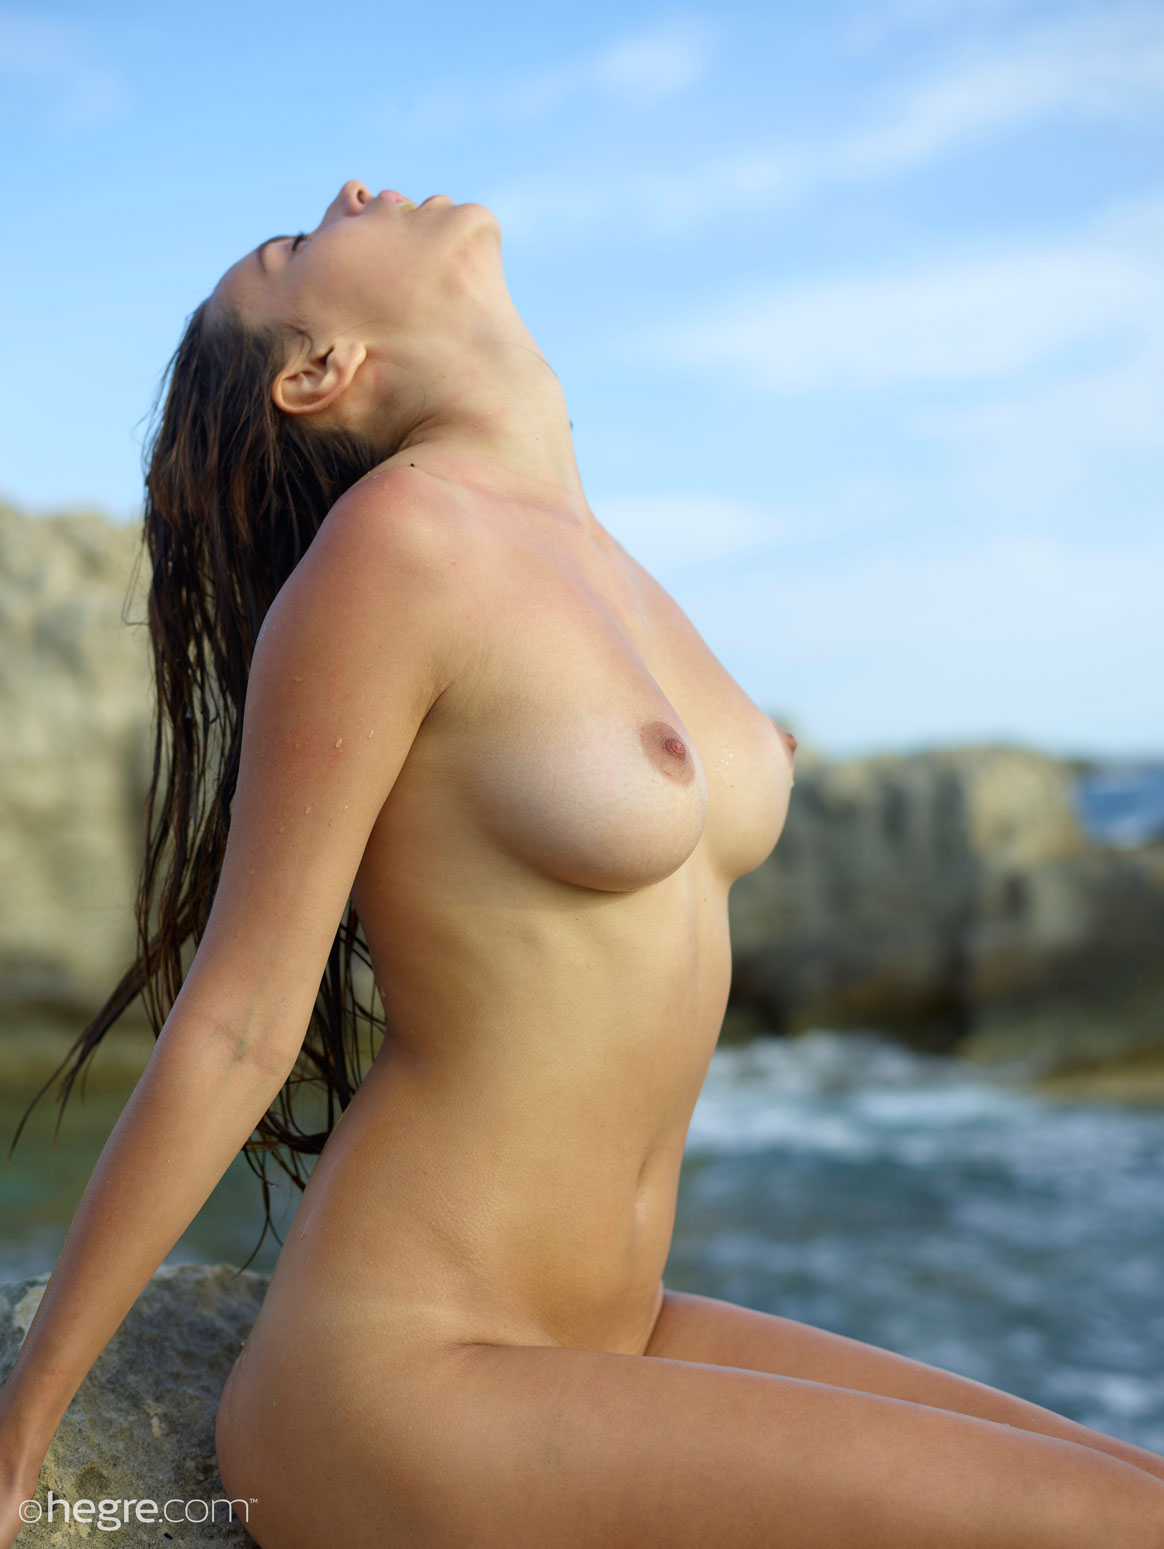 cdn gyrls wp content uploads 2018 04 30 alisa i nude and wet in the sun 6